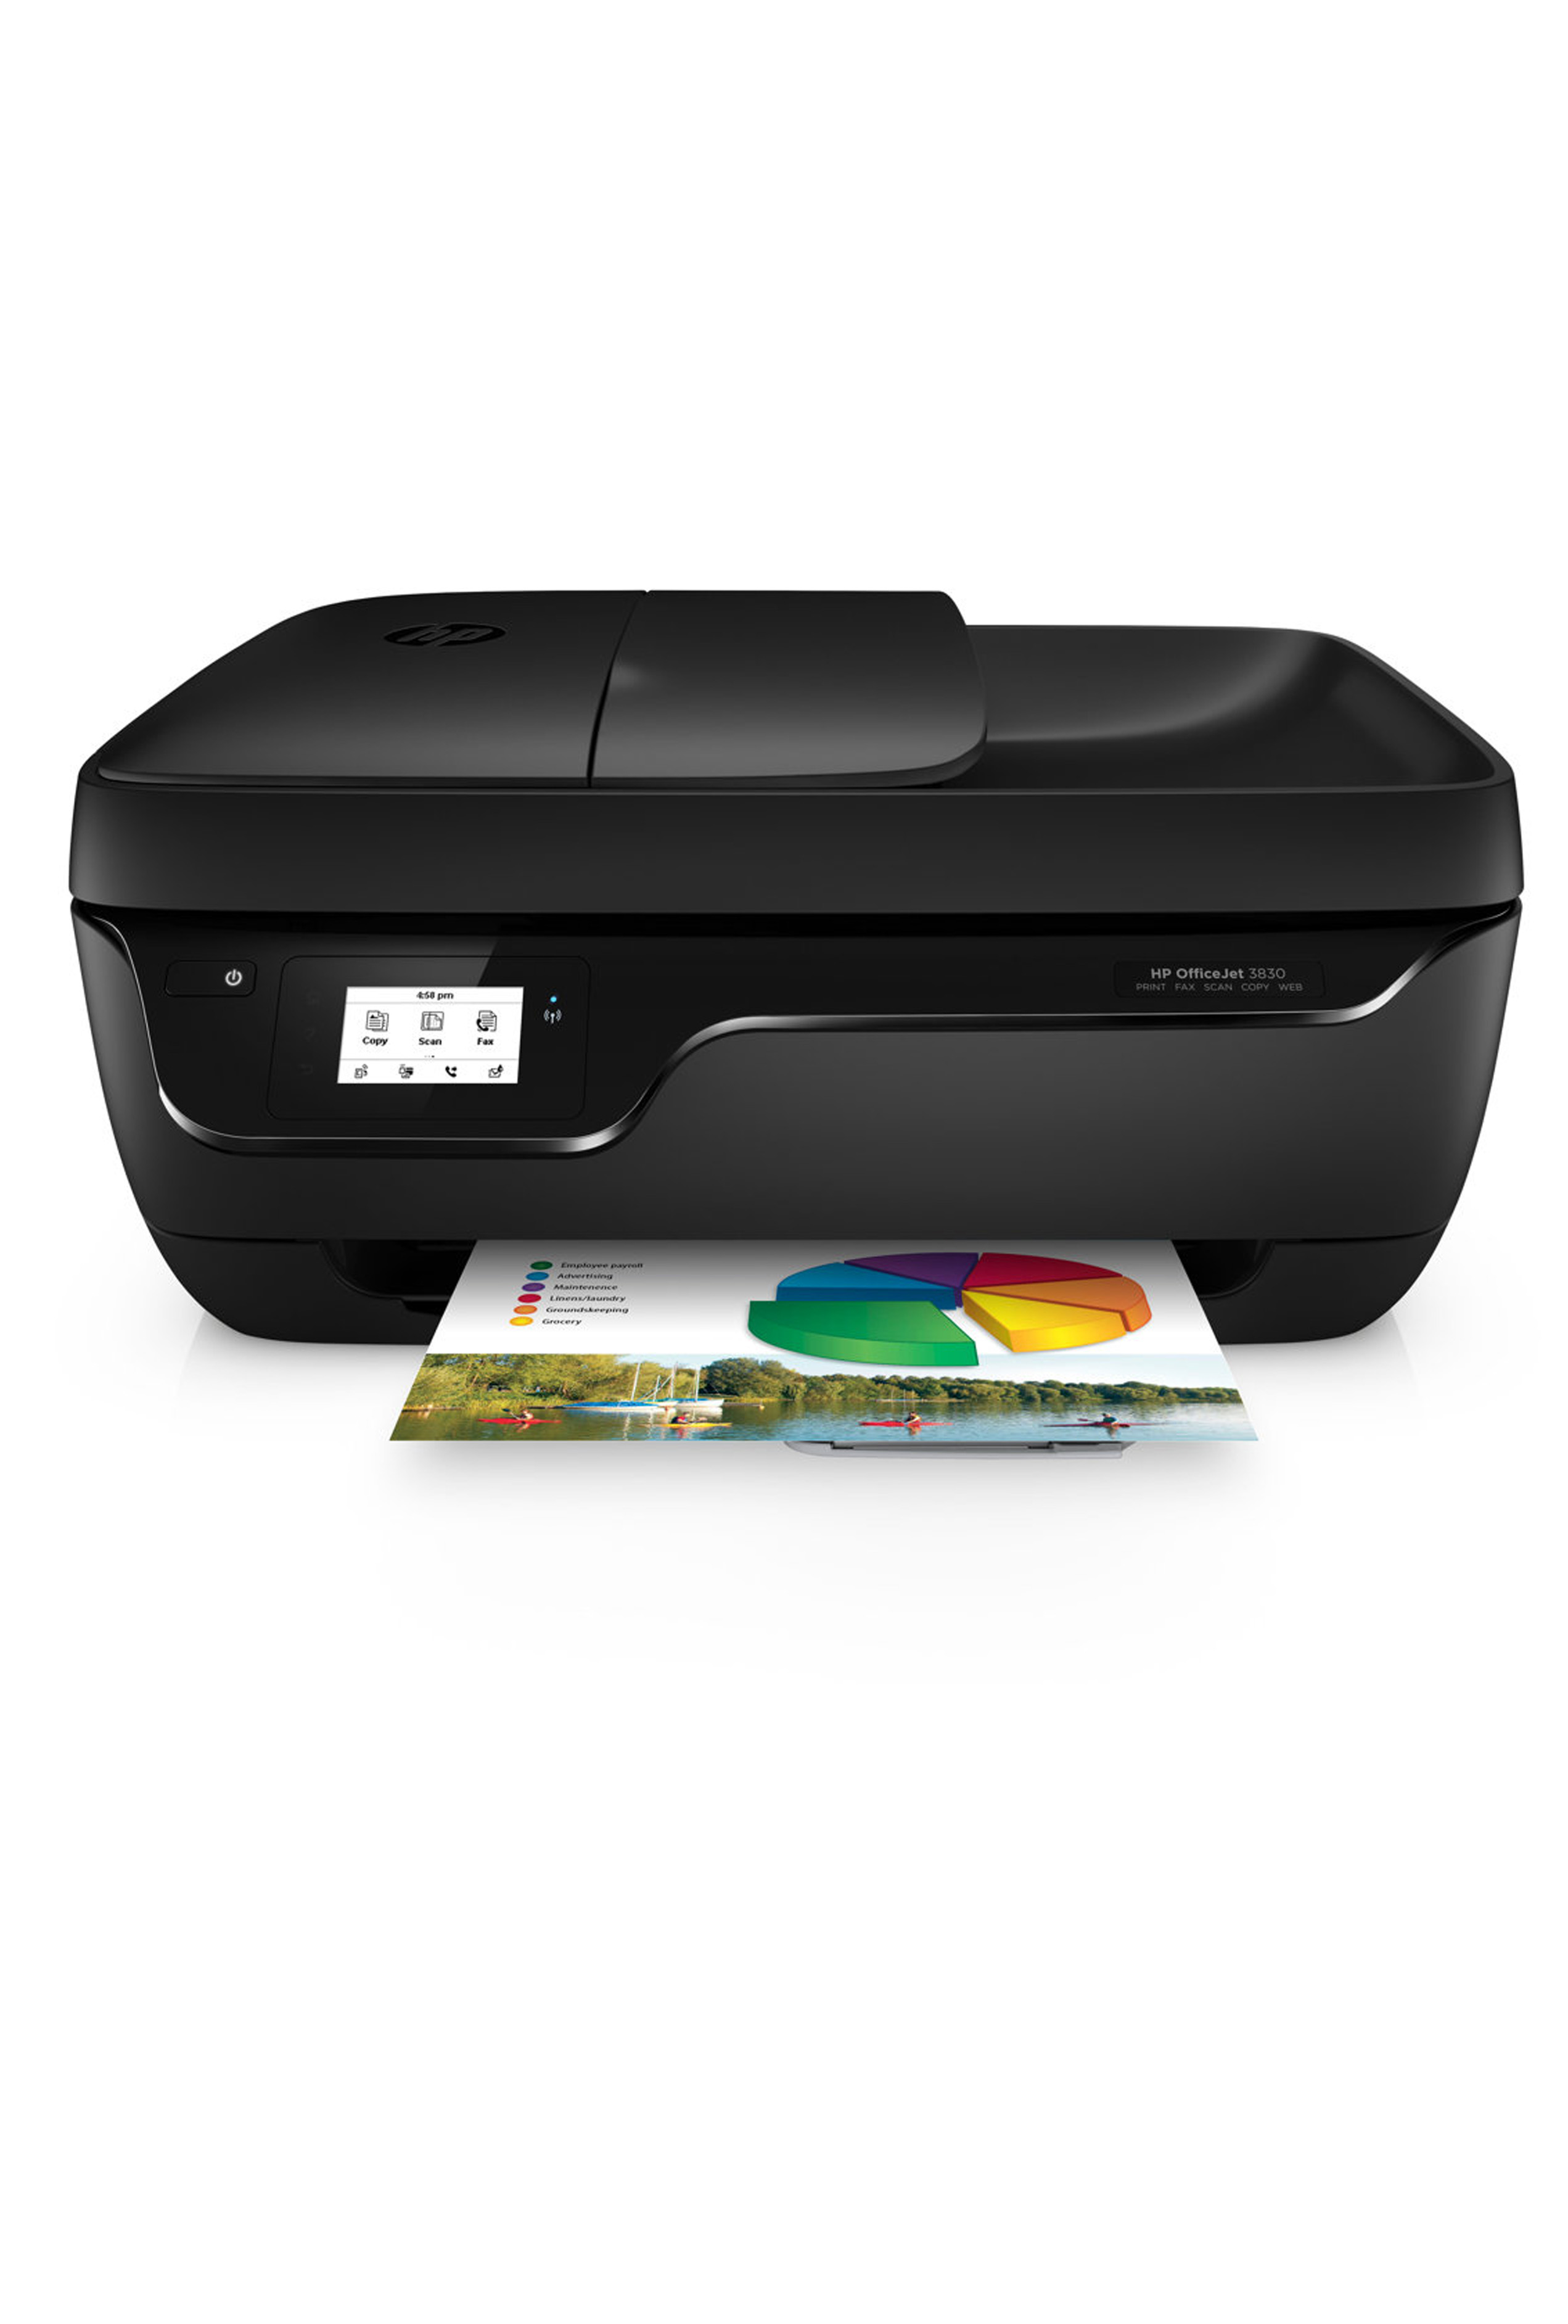 HP OfficeJet 3830 All-in-One Printer 20ppm Print/Copy/Scan/Wireless/Fax